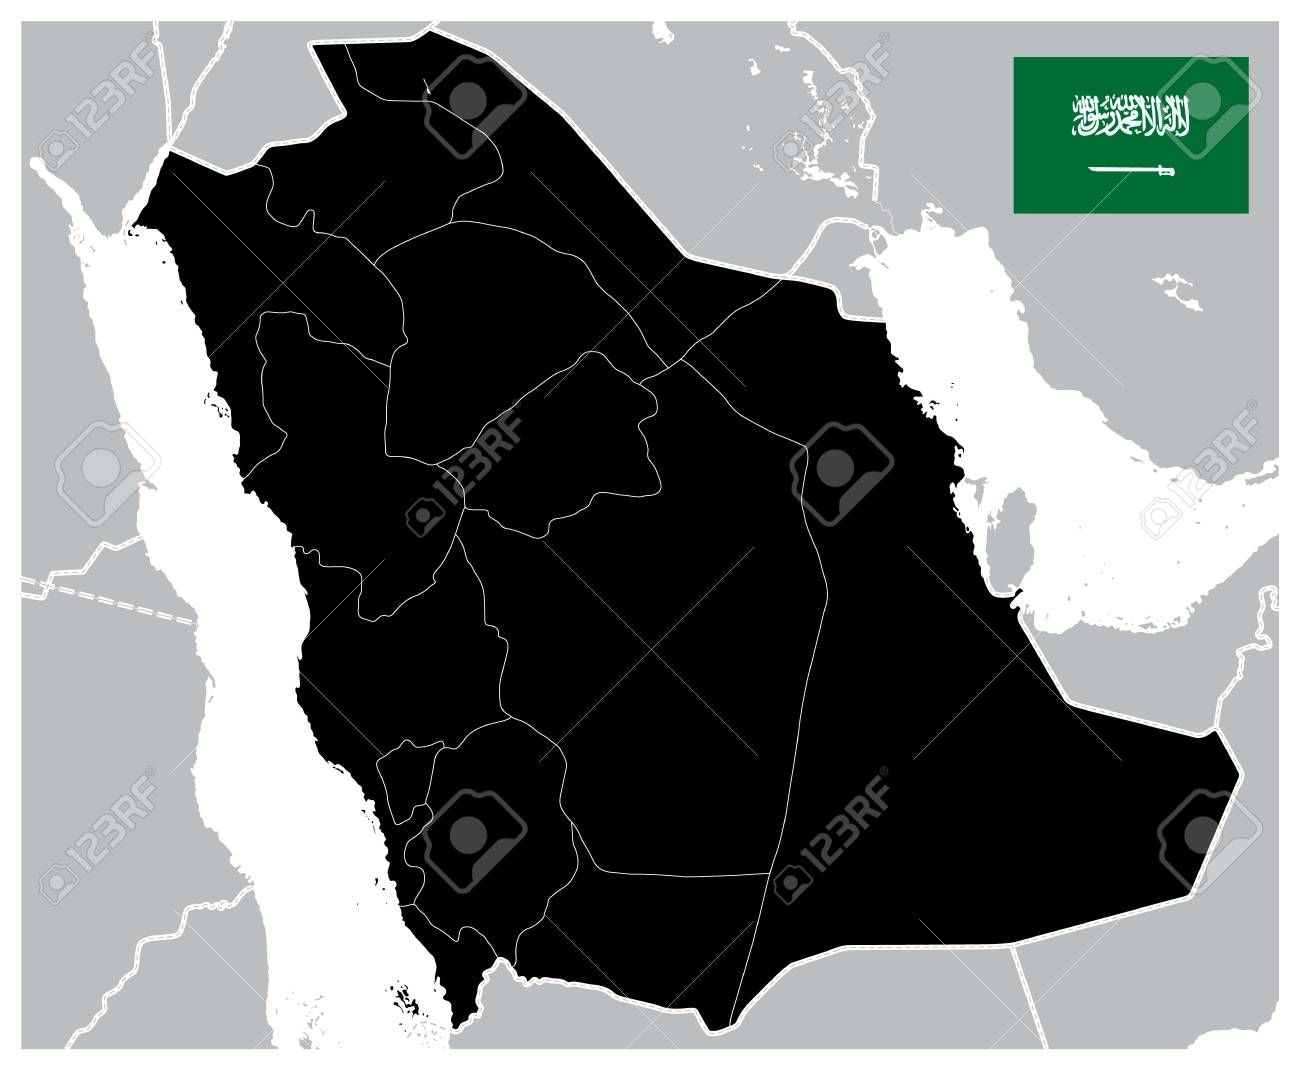 Black Color Saudi Arabia Map Blank Map Image Contains Layers With Administrative Divisions M Vector Illustration Infographic Design Administrative Division